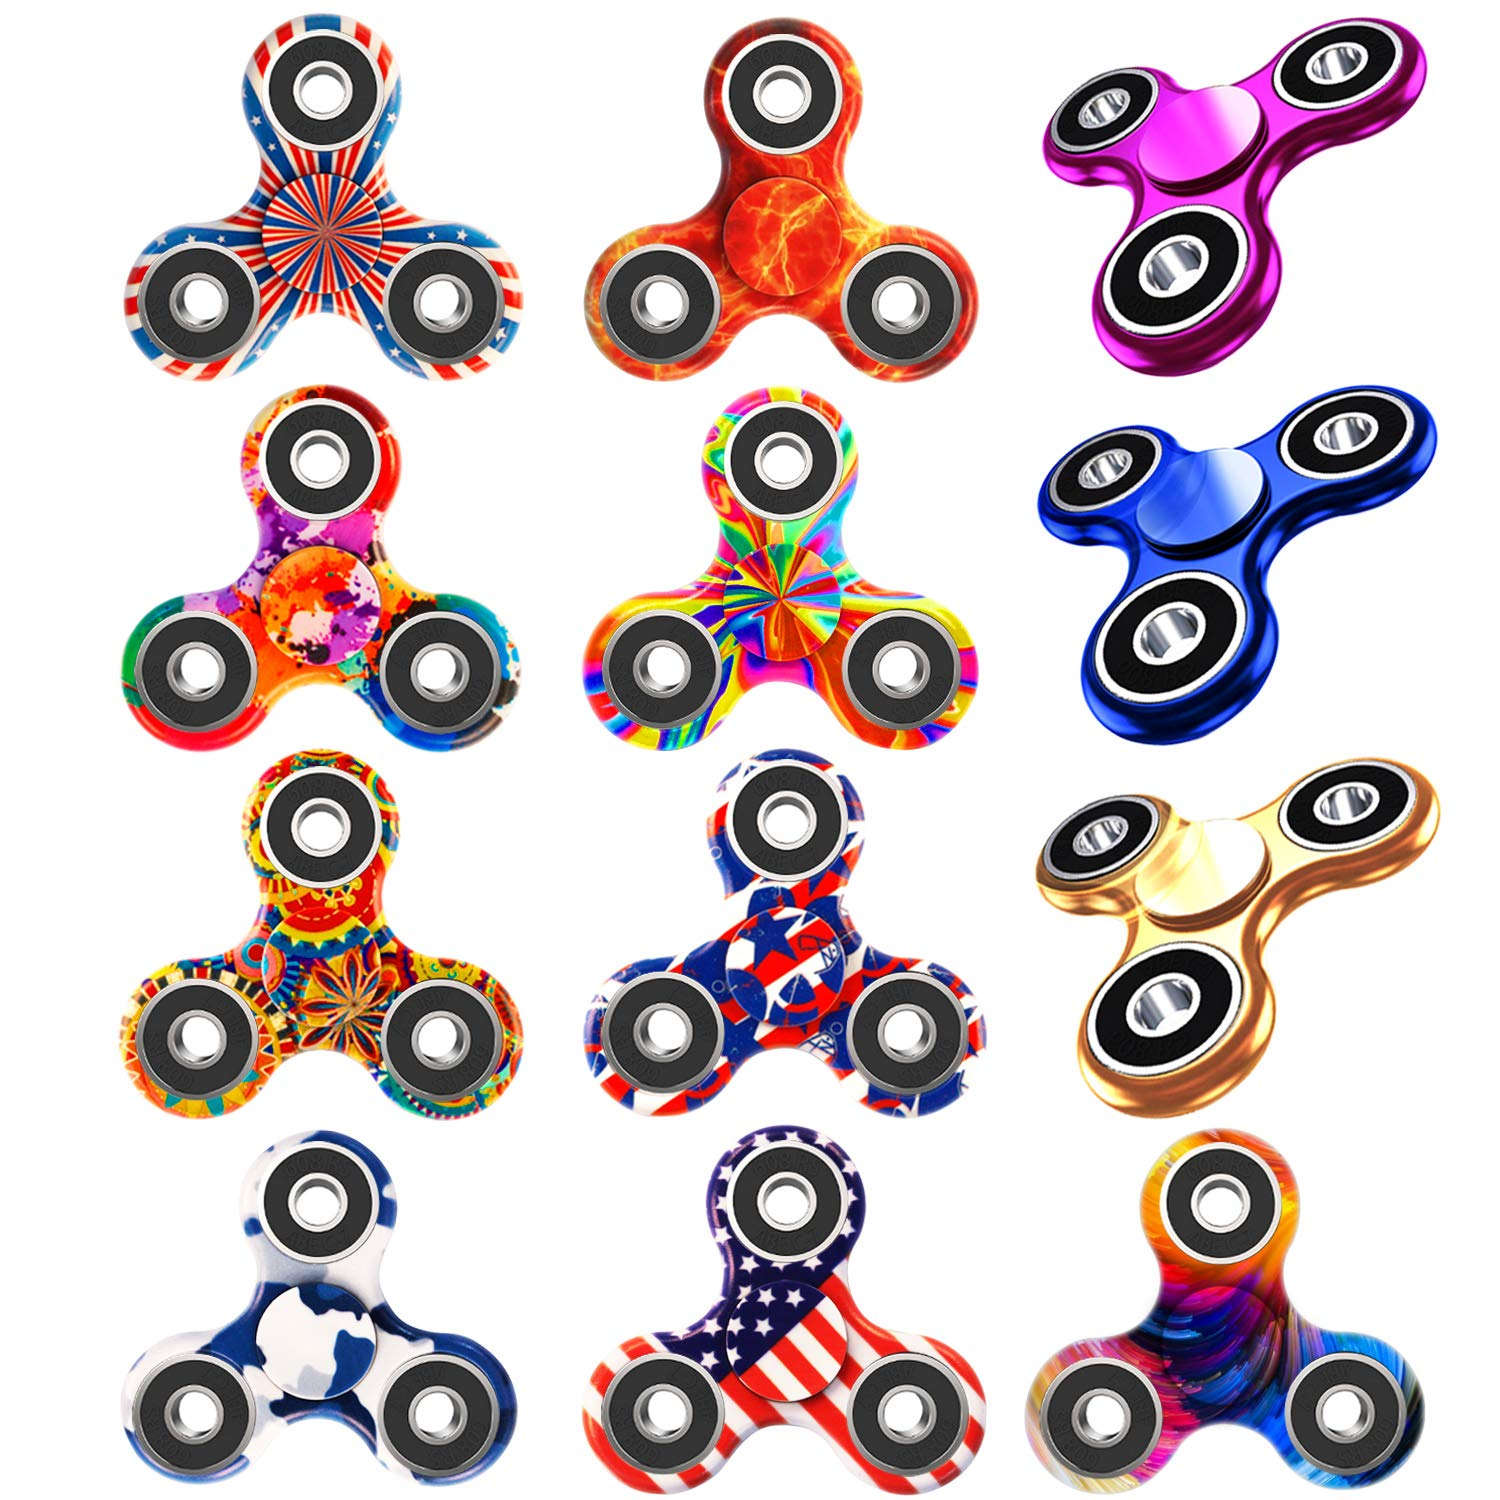 Owen Kyne 12 Pack Fidget Spinner, EDC Hand Tri-Spinner Fidget Stress Relief Toys for Adults and Kids, All-in-one Design 2-3 Min Spins,Relieves Your ADD ADHD Autism by Owen Kyne